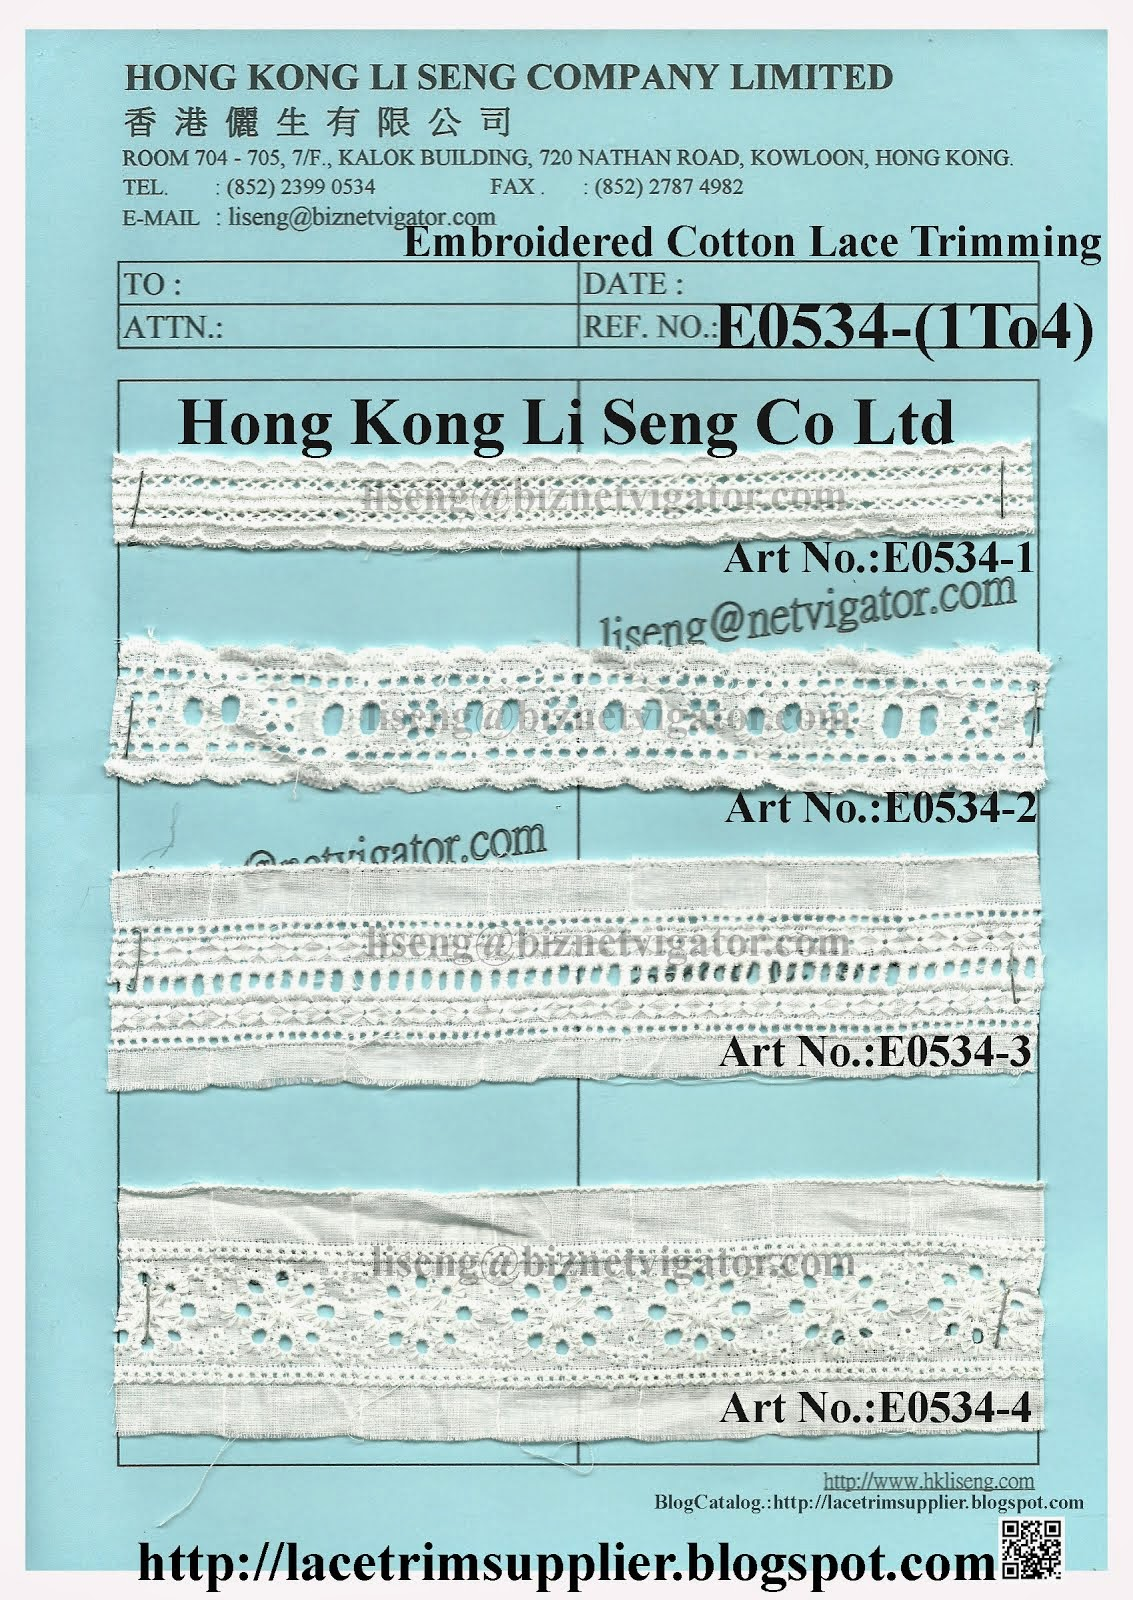 Embroidered Cotton Lace Trimming Factory and Supplier - Hong Kong Li Seng Co Ltd